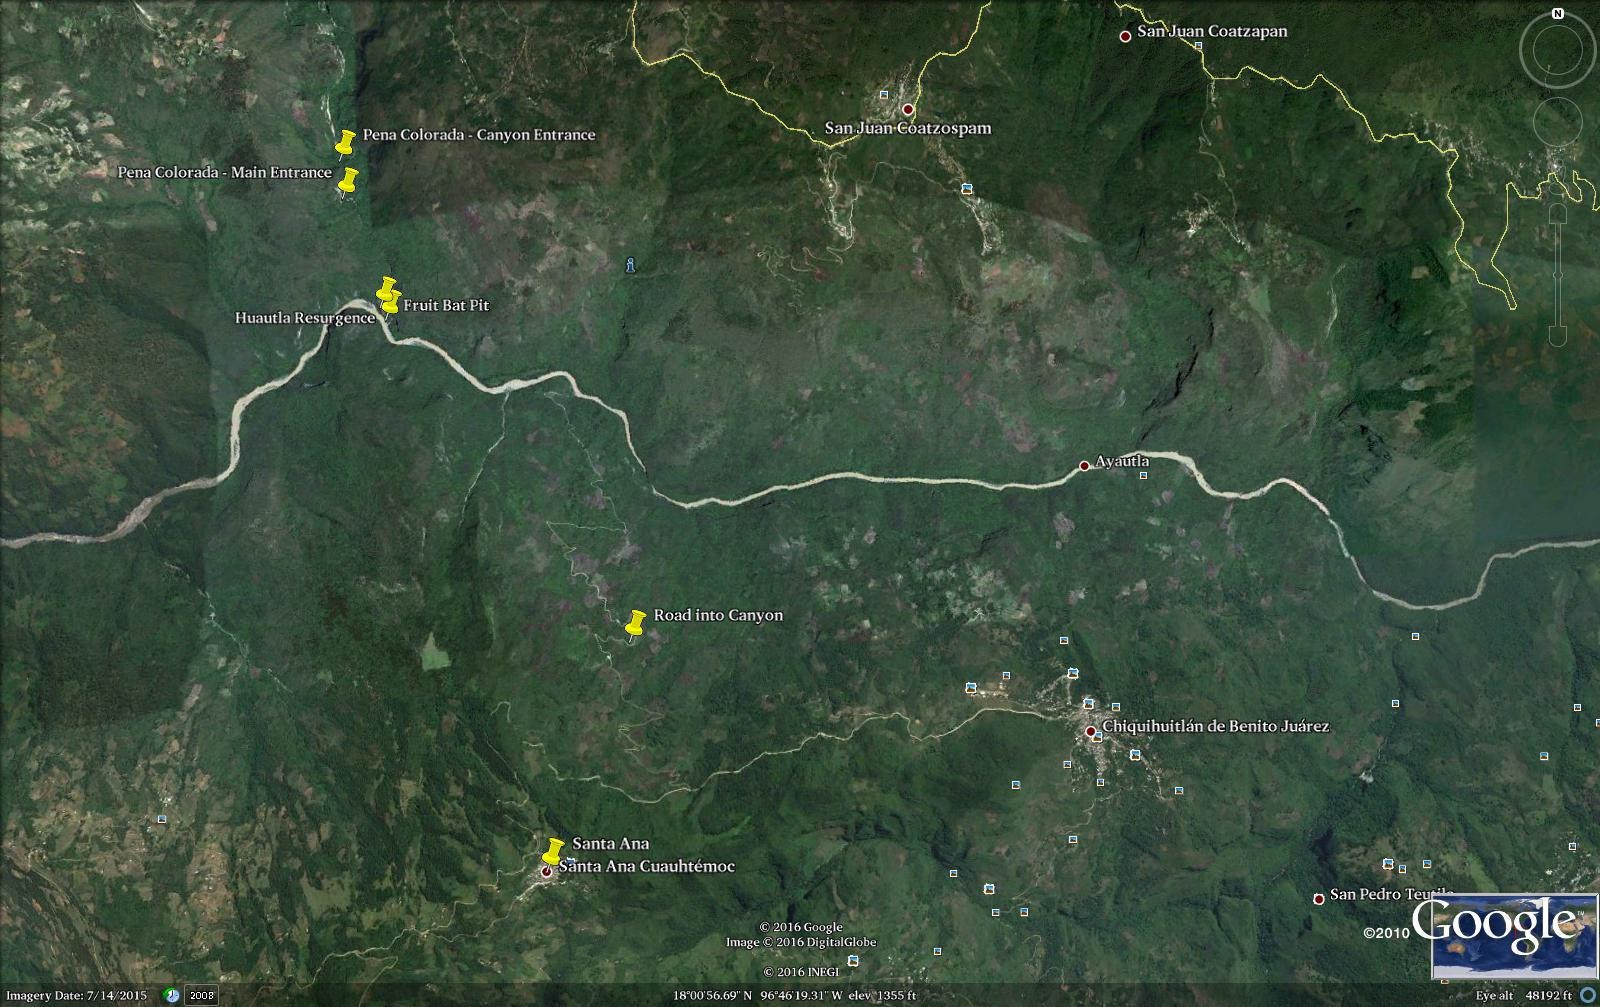 A map of the area around the Huautla resurgence, showing multiple entrances of the Huautla resurgence and the Pena Colorada. Santa Ana Cuauhtemoc was used as base camp for the '16 expedition.